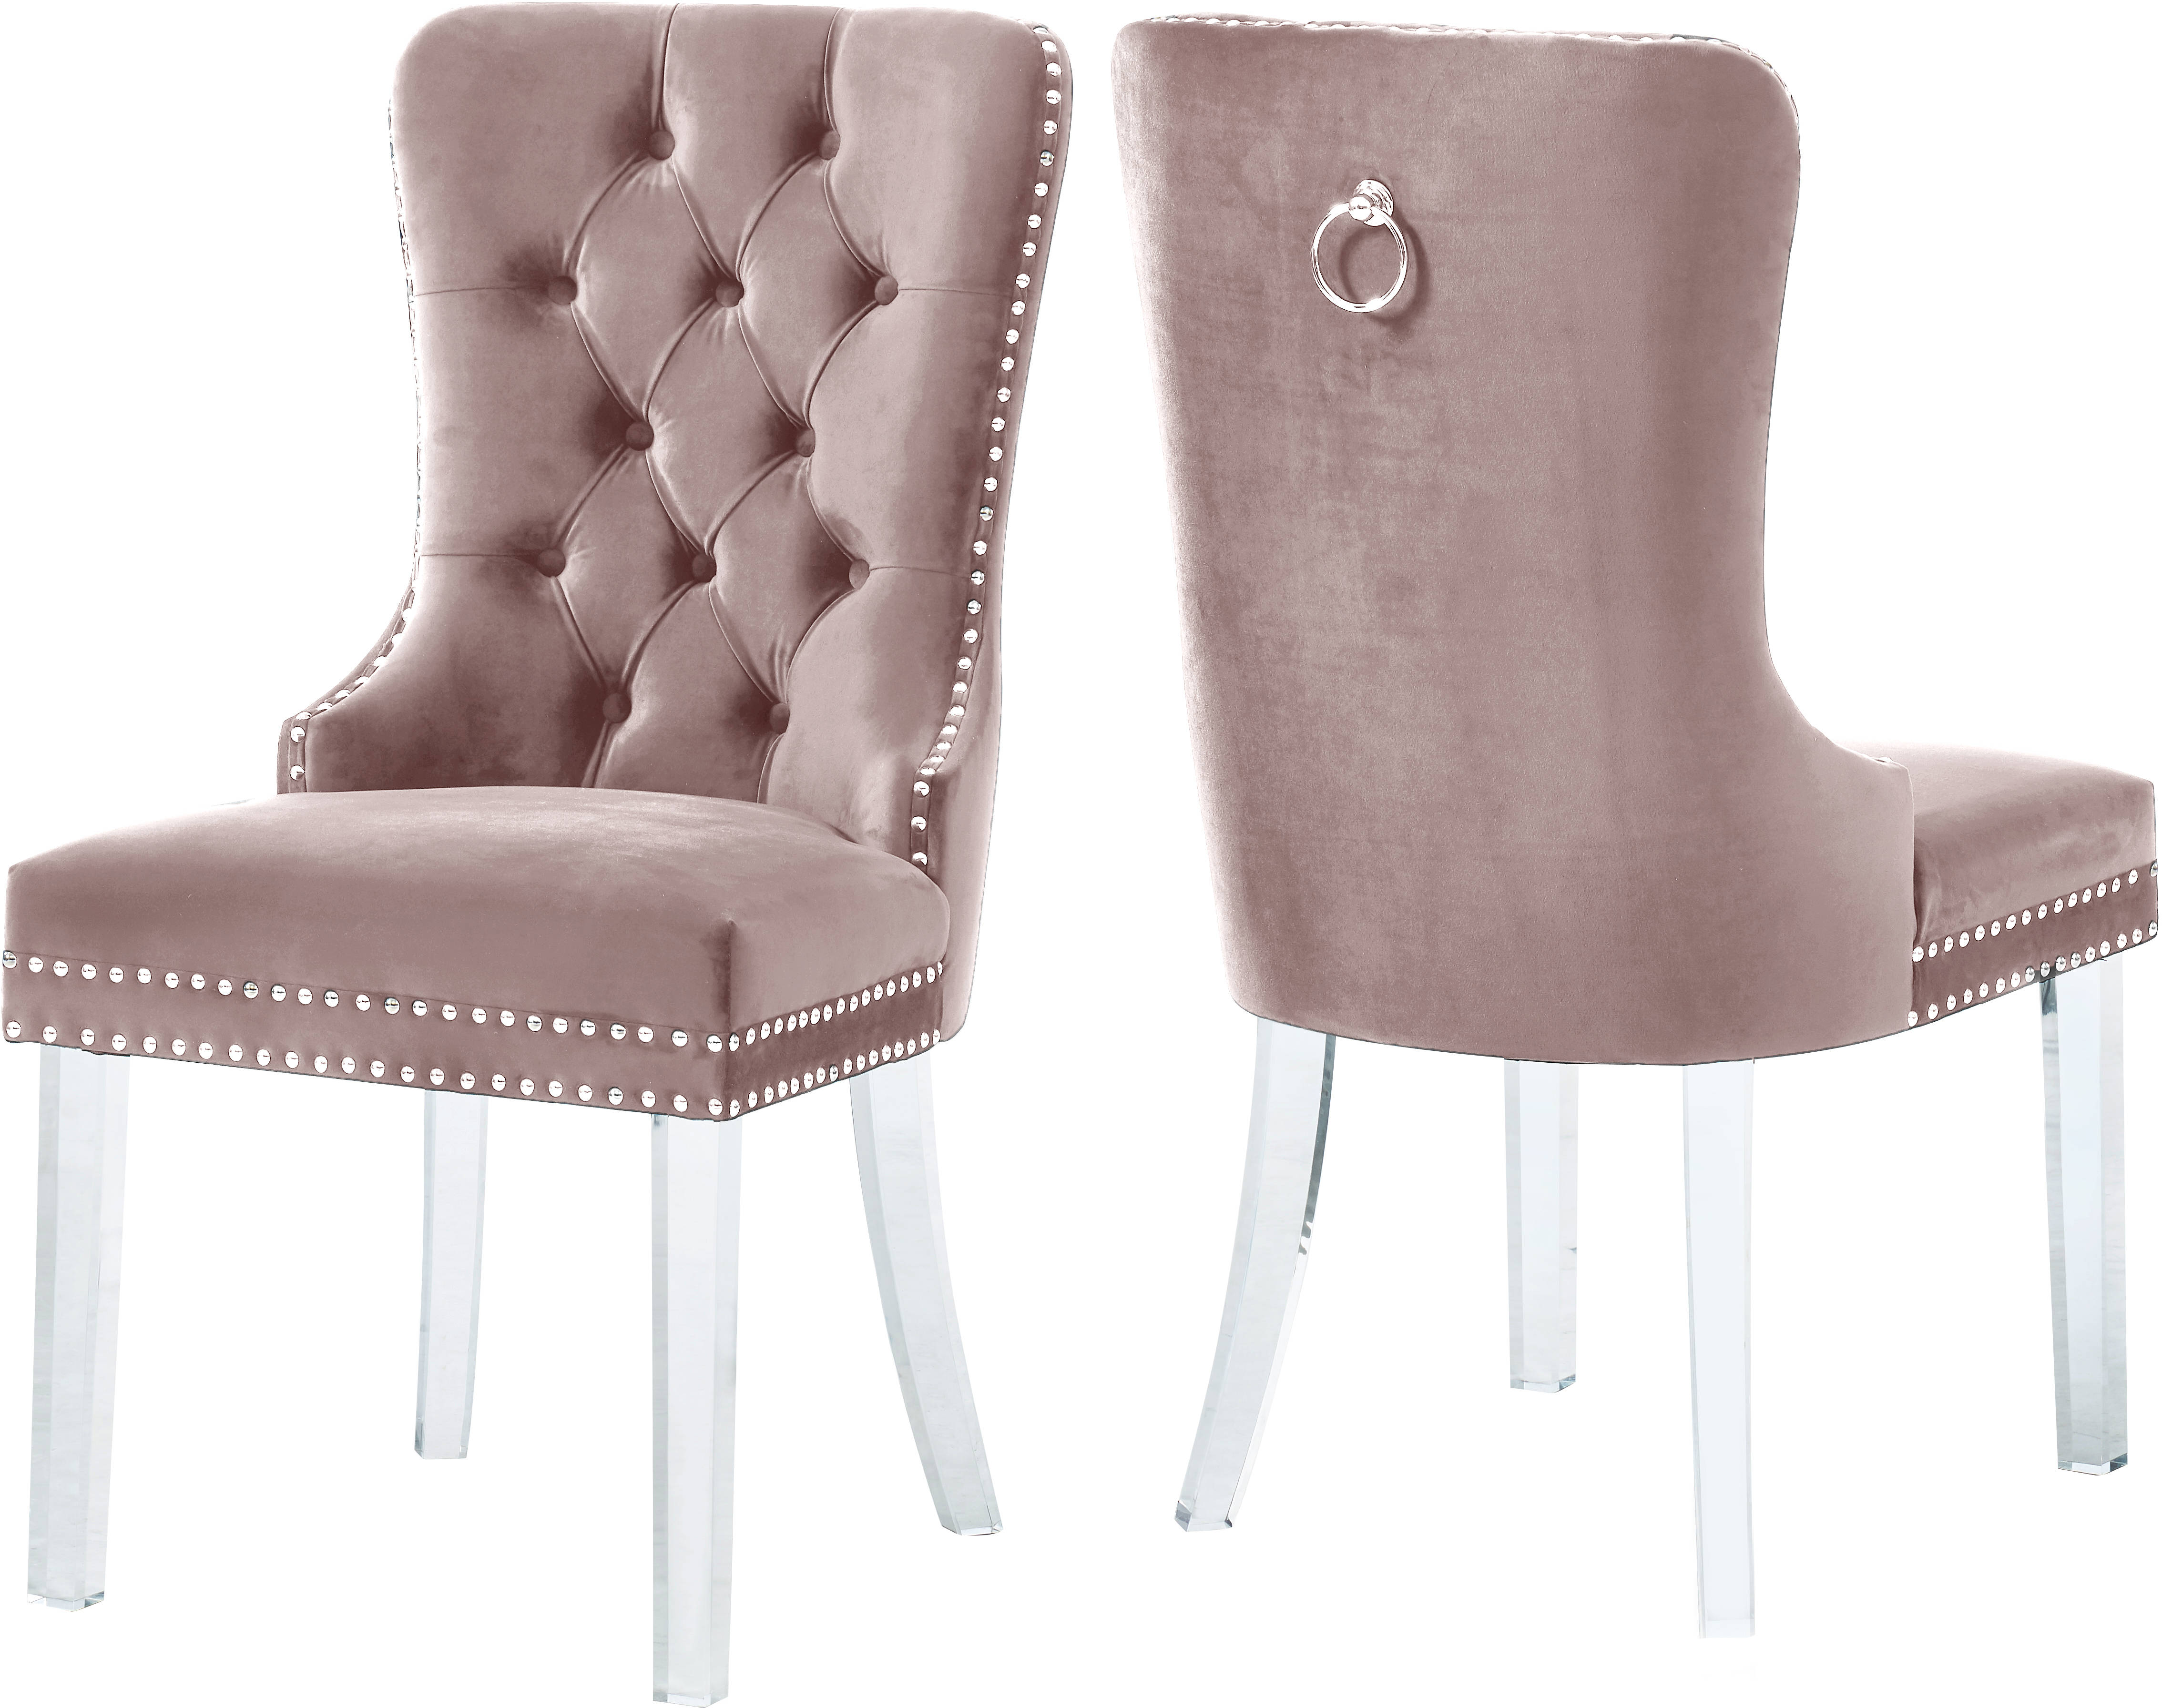 2a9677ccdbc6a 2 Meridian Furniture Miley Pink Velvet Dining Chairs